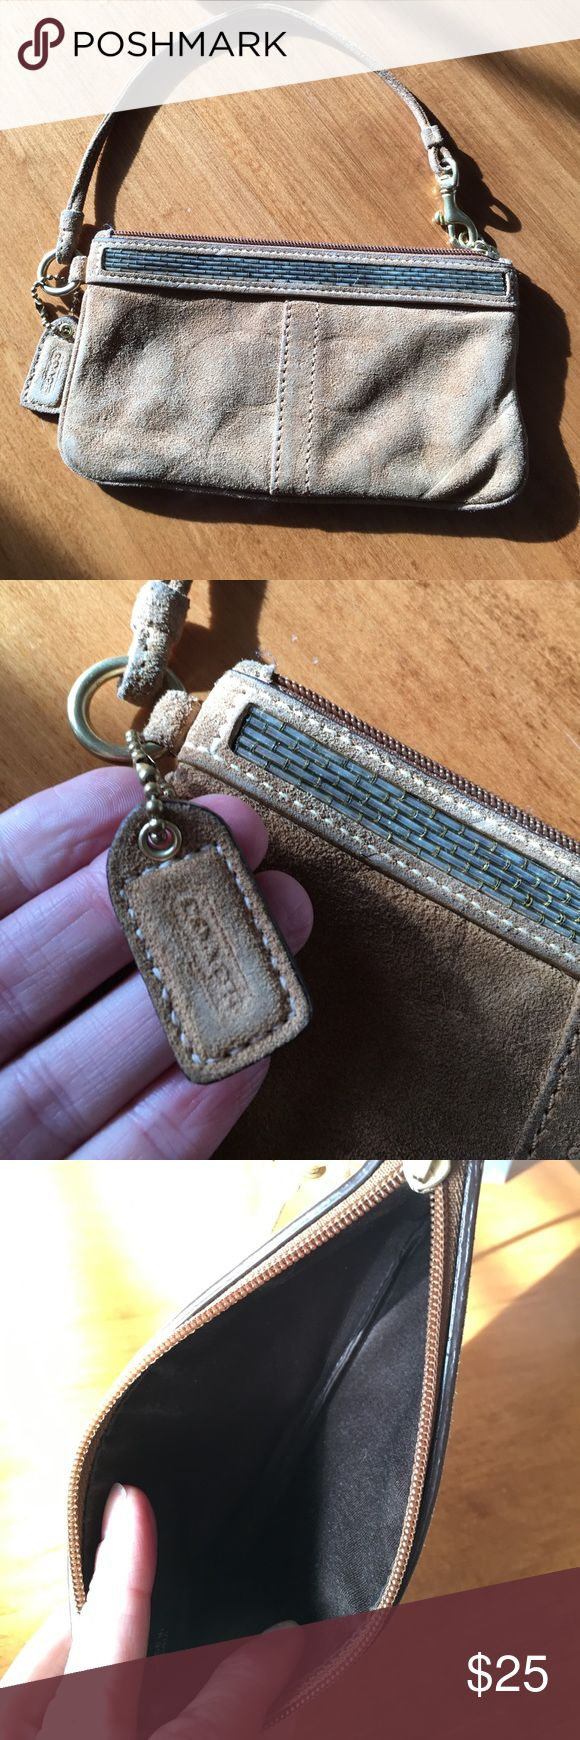 "Coach Wristlet Authentic brown suede Coach wristlet. Used condition. Zipper works perfectly, inside appears clean. The suede ""Coach"" and C's are worn down from use. Price reflects condition. Smoke free home. Offers welcome. Coach Bags Clutches & Wristlets"